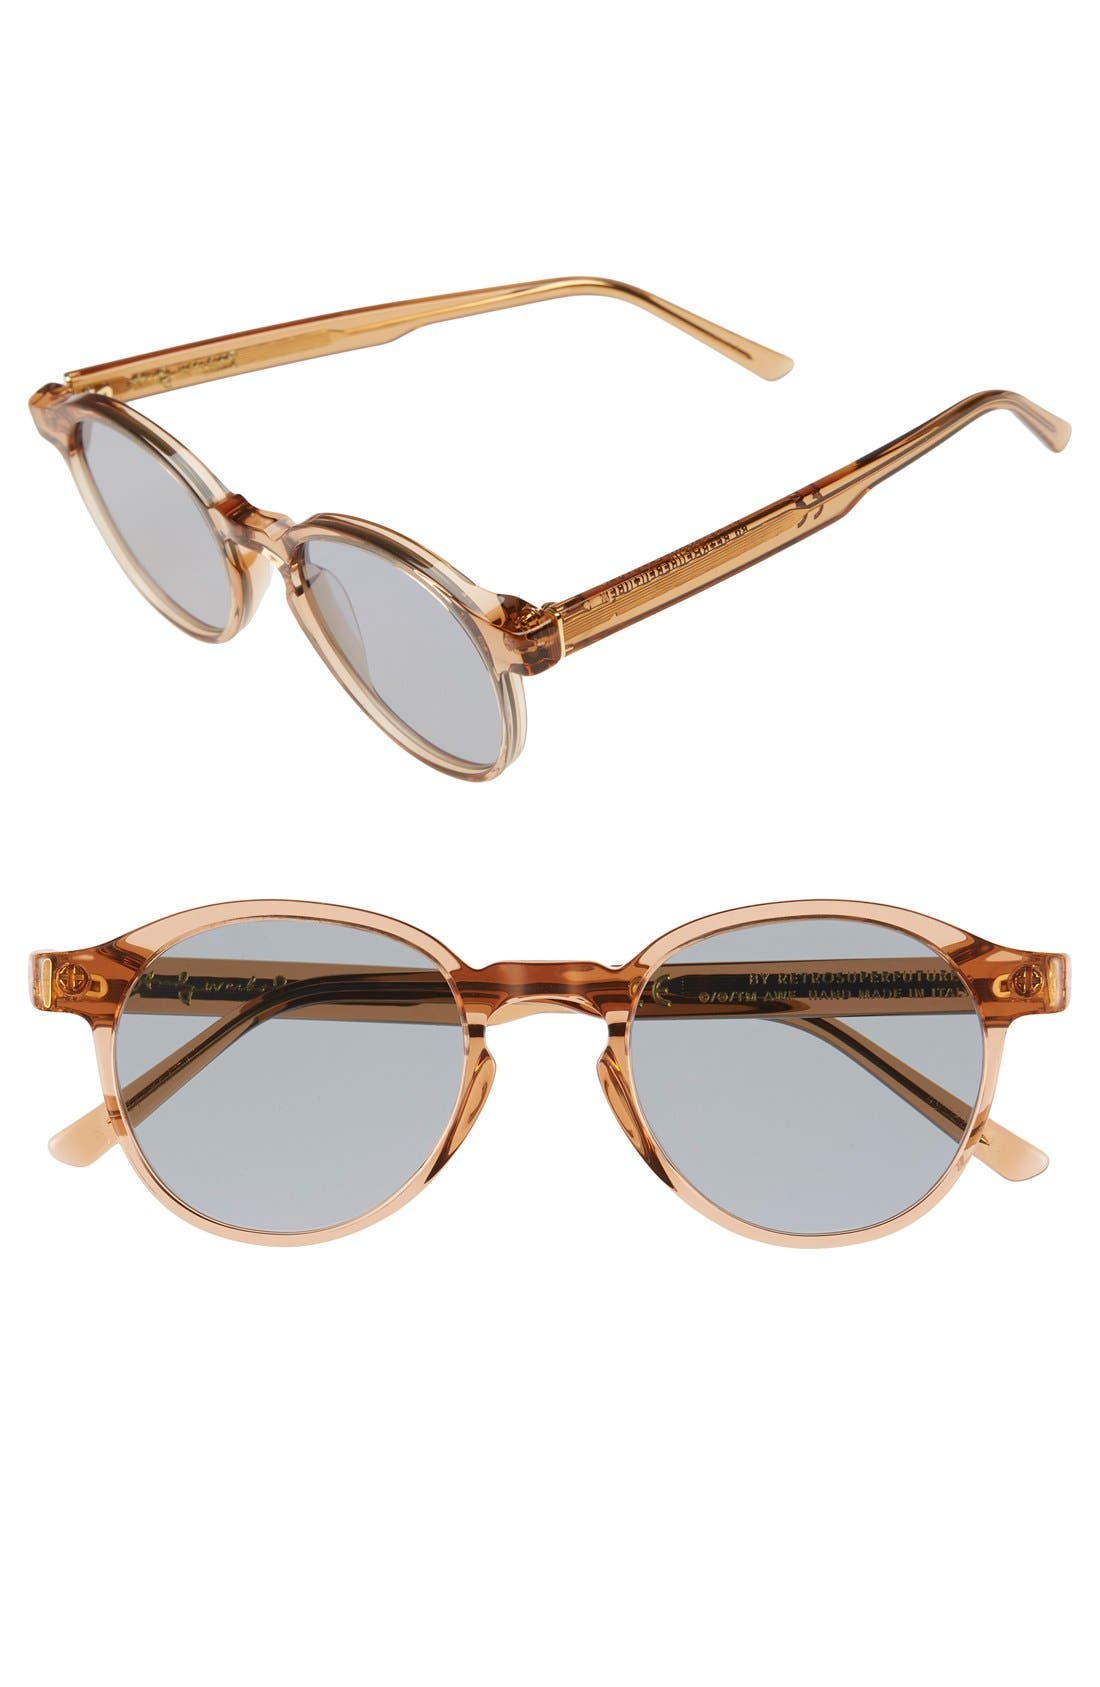 Alternate Image 1 Selected - SUPER by RETROSUPERFUTURE® 'Iconic' 49mm Sunglasses